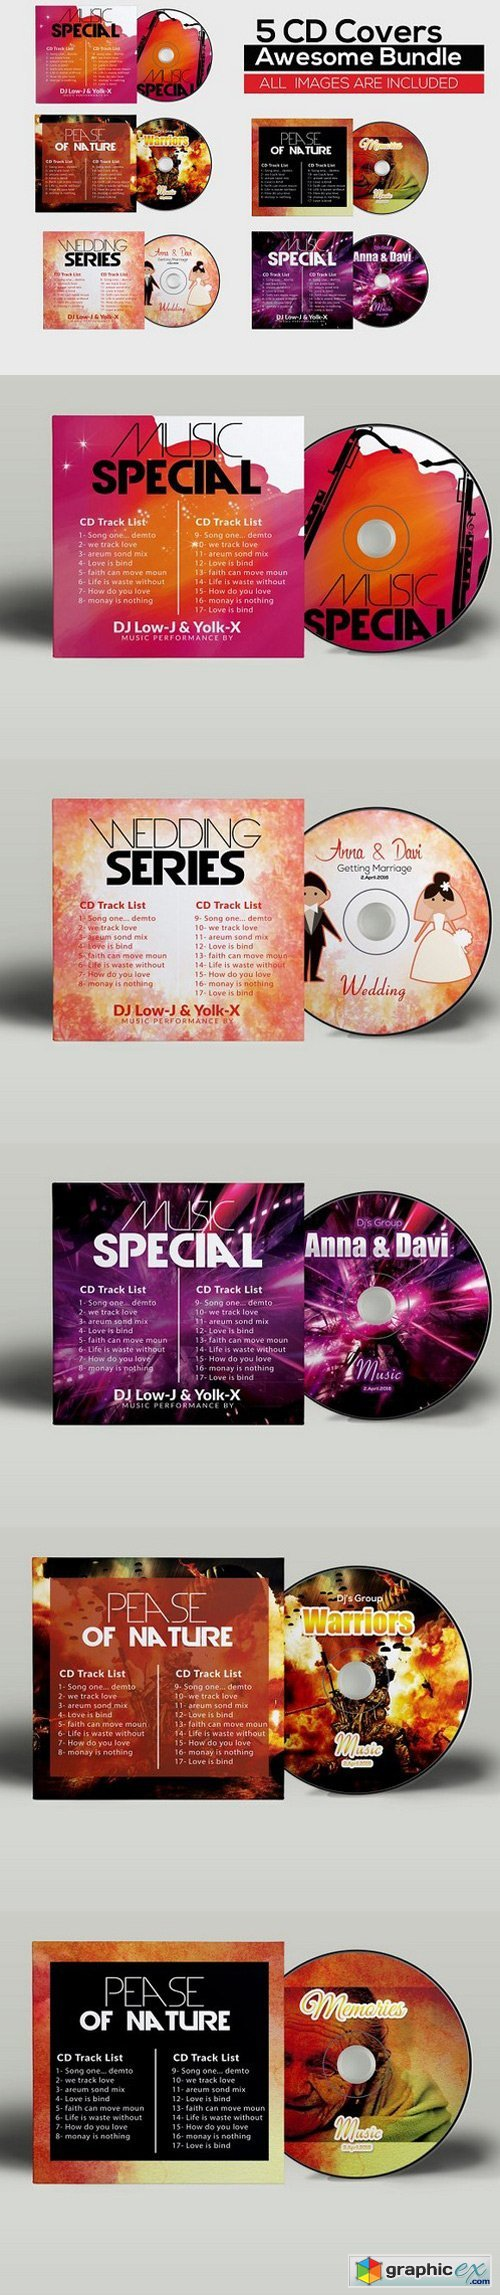 5 CD Cover Psd Bundle